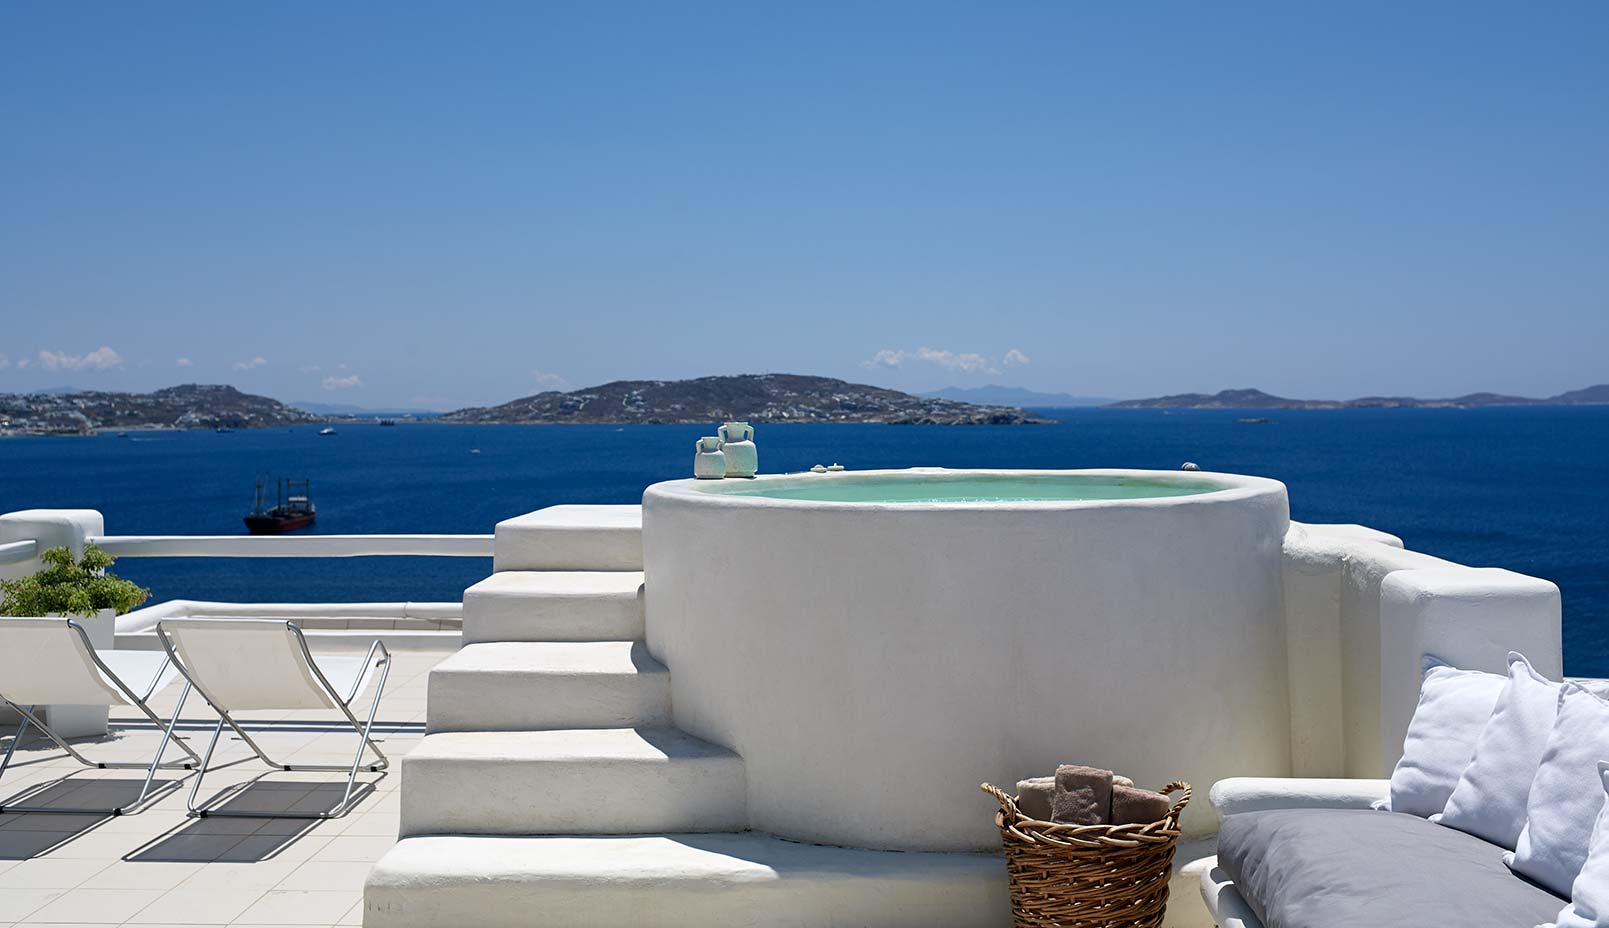 Always+Looking+For+The+Magic-Nicole-Toland+Design+Travel+Blogger+The+Stay+List+Rocabella+Hotel+Mykonos